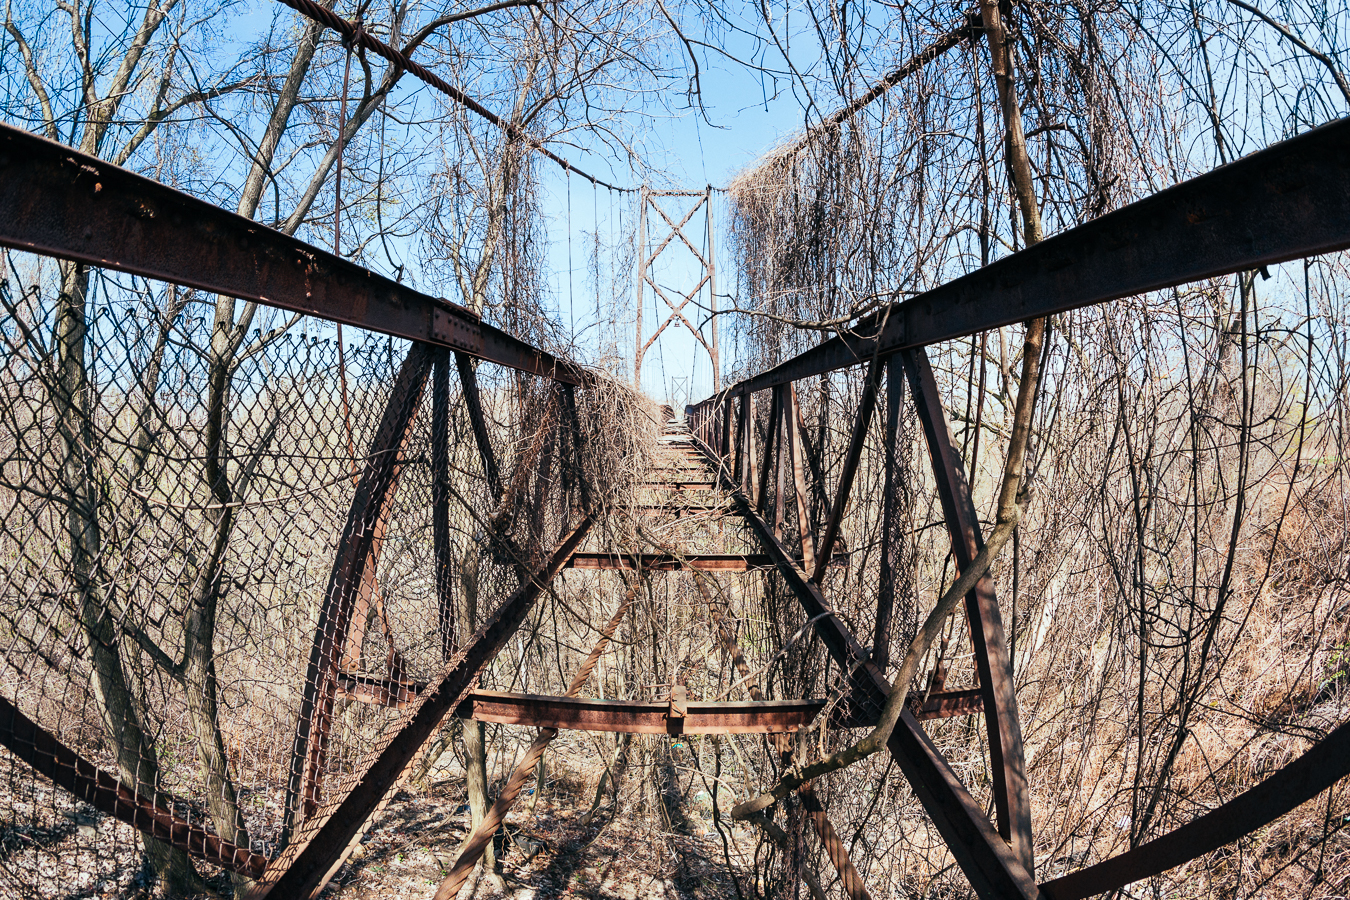 This use to be a pedestrian suspension bridge that connected two feuding neighborhoodsof different cultures, and during a riot thewooden walkway was burned. Now it's just the rusted skeleton over a deep ravine, which I wasn't about toscramble over.